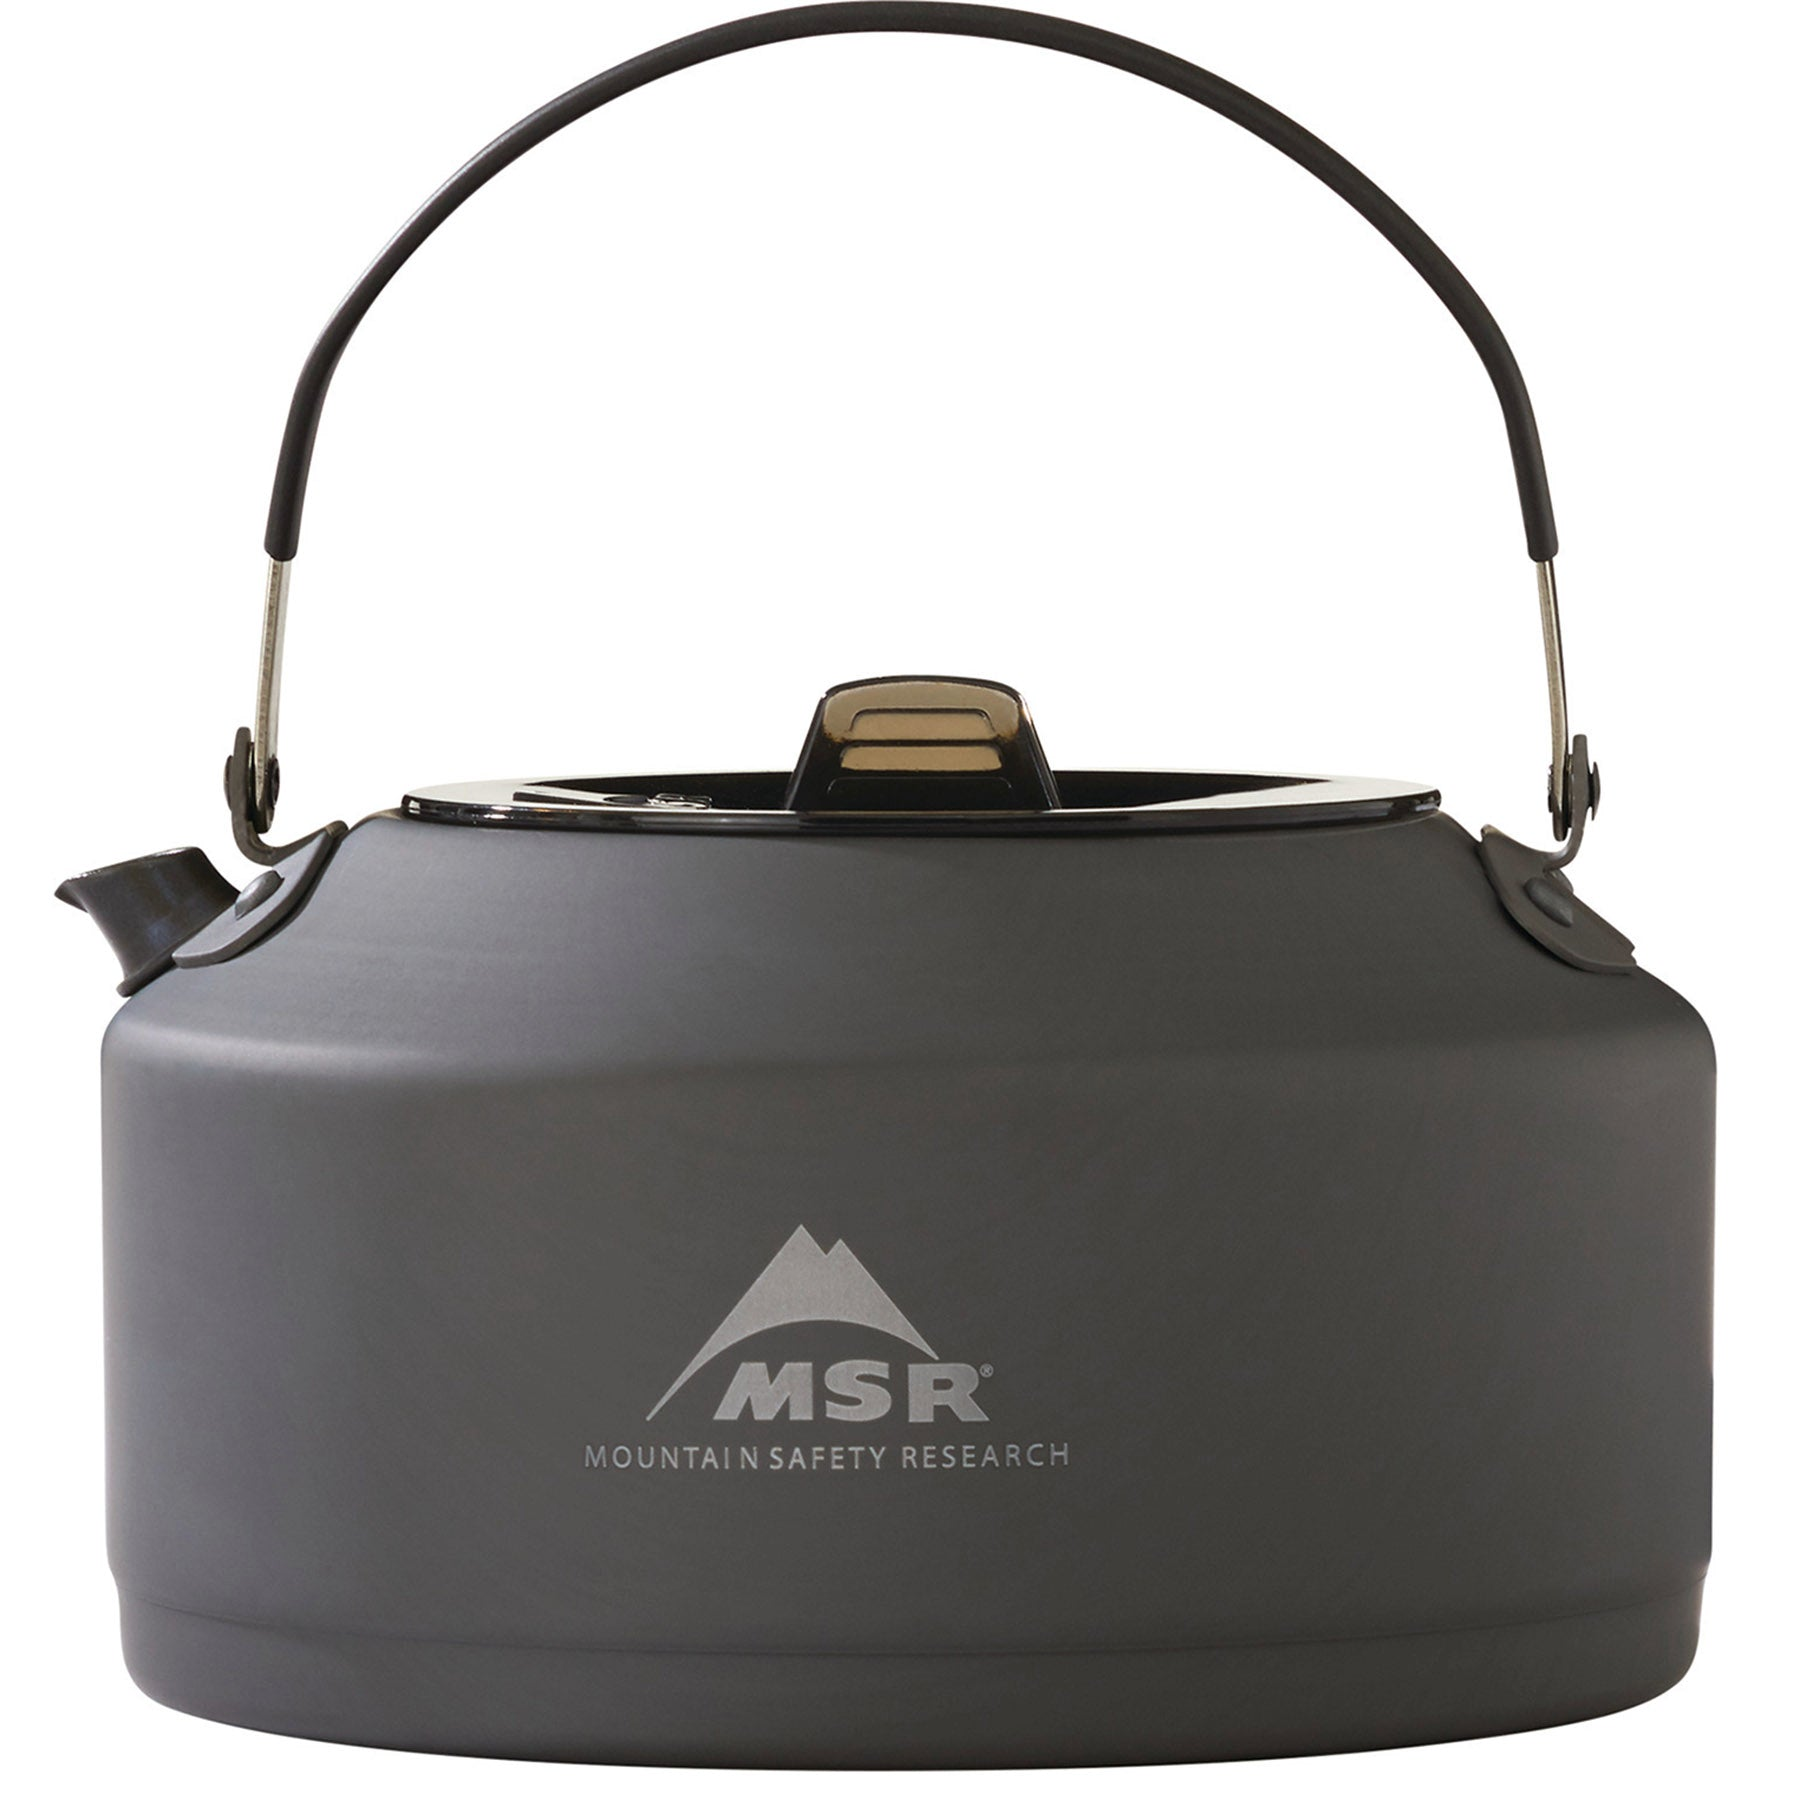 the msr pika pot, side view, handle up